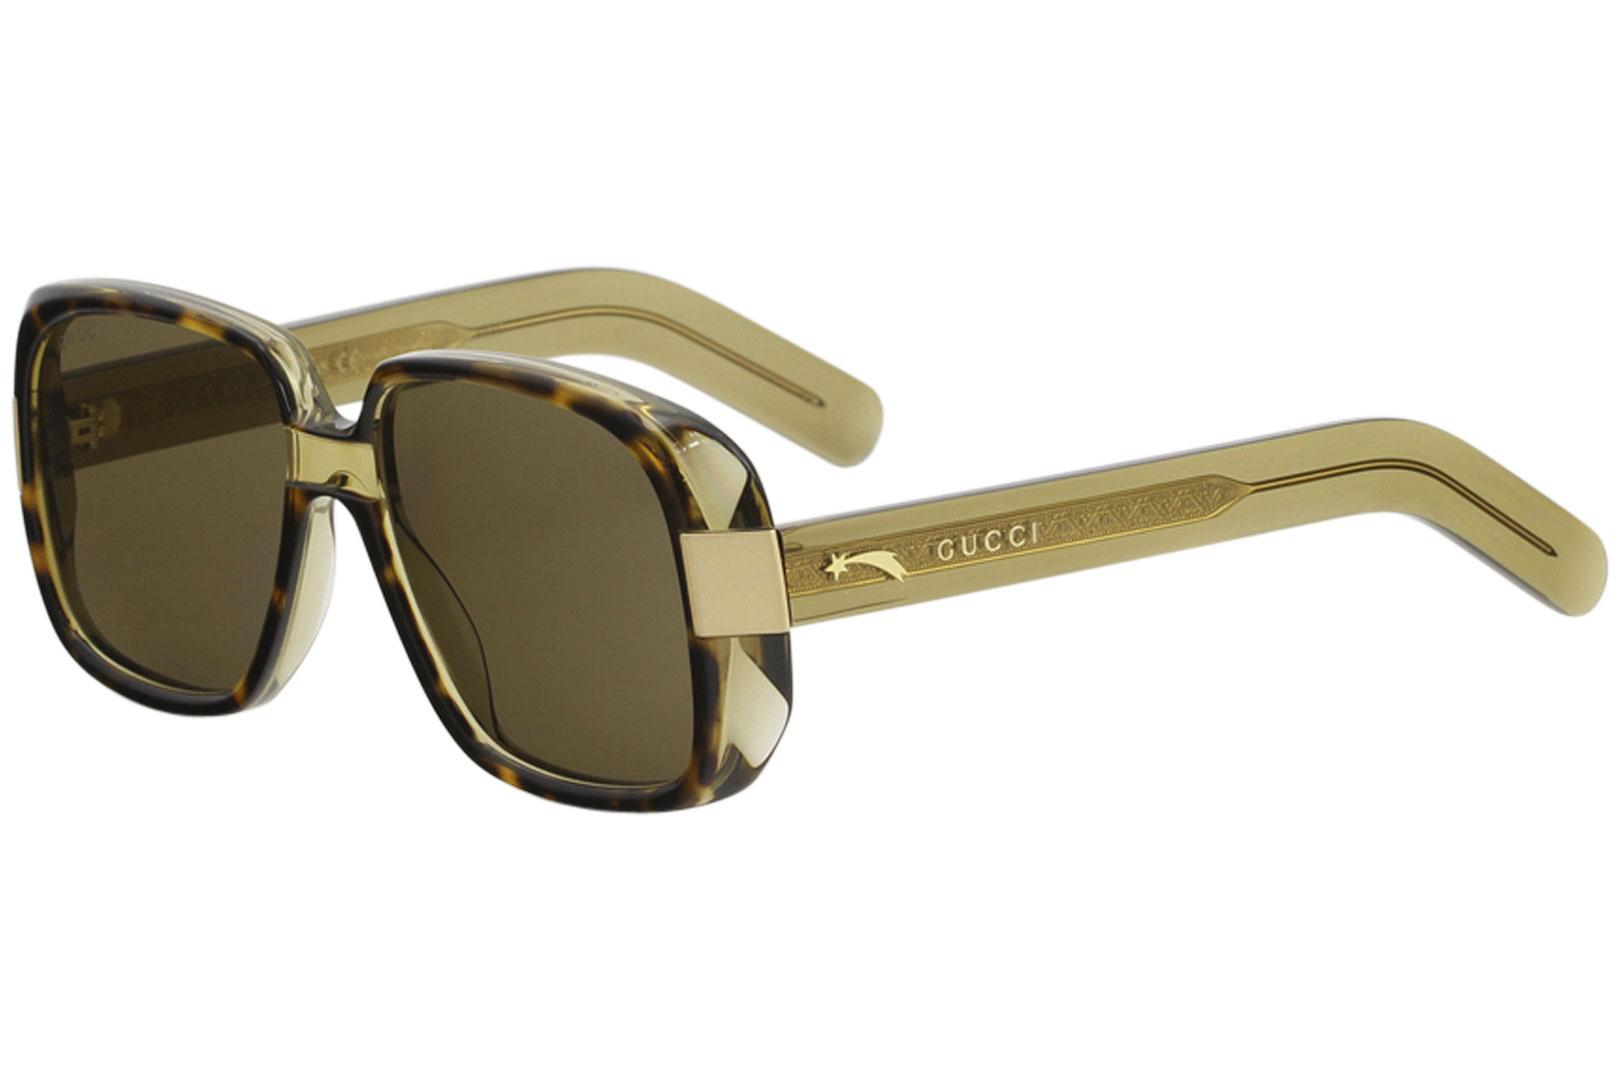 c3ac55aafcd Gucci Women s GG0318S GG 0318 S Fashion Square Sunglasses by Gucci